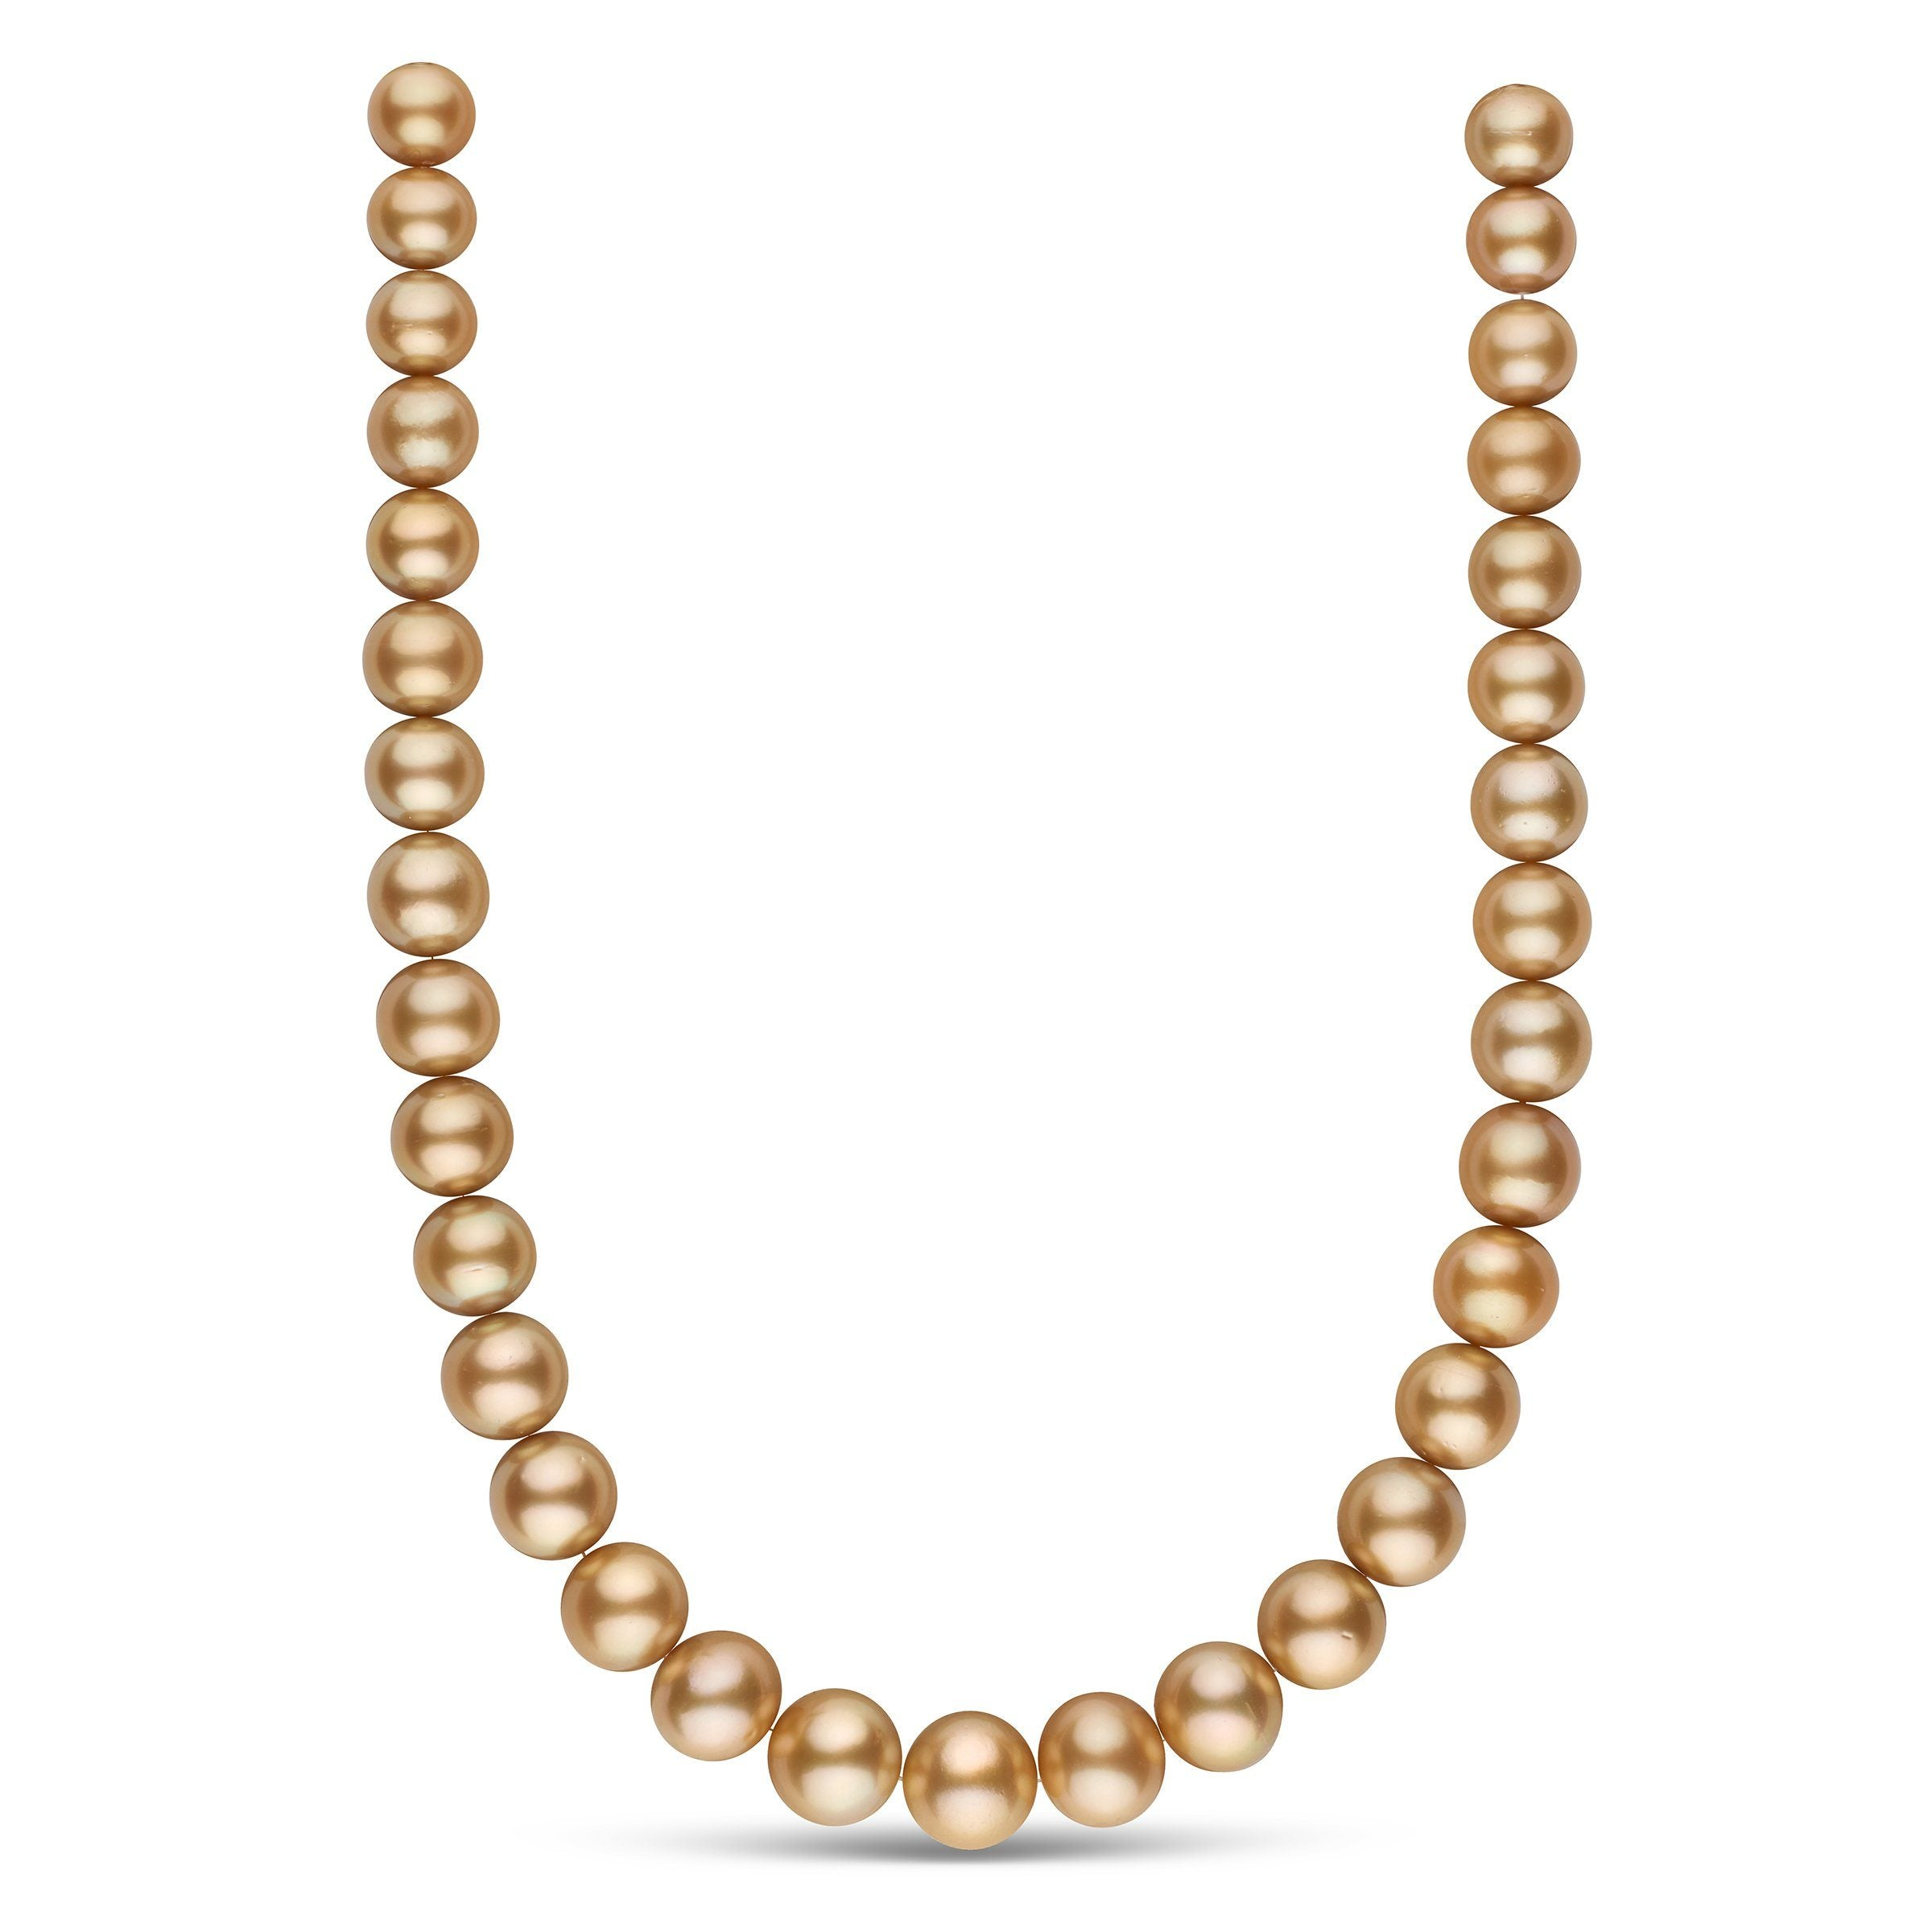 11.6-14.7 mm AA+/AAA Golden South Sea Round Pearl Necklace